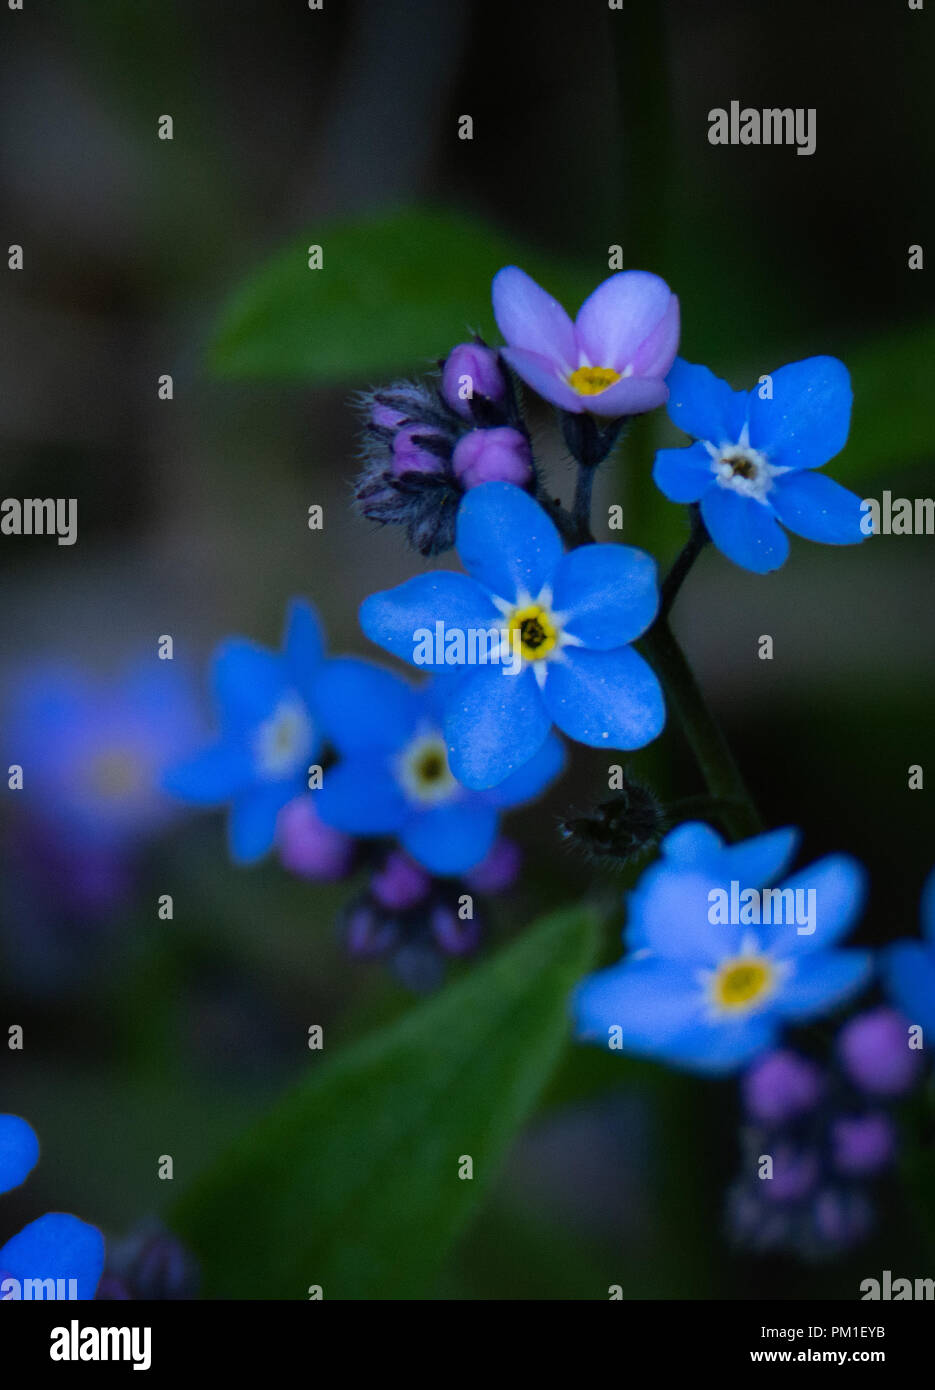 The vivid blue of the petals of a Forgot Me Not flower drive the darkness away. - Stock Image